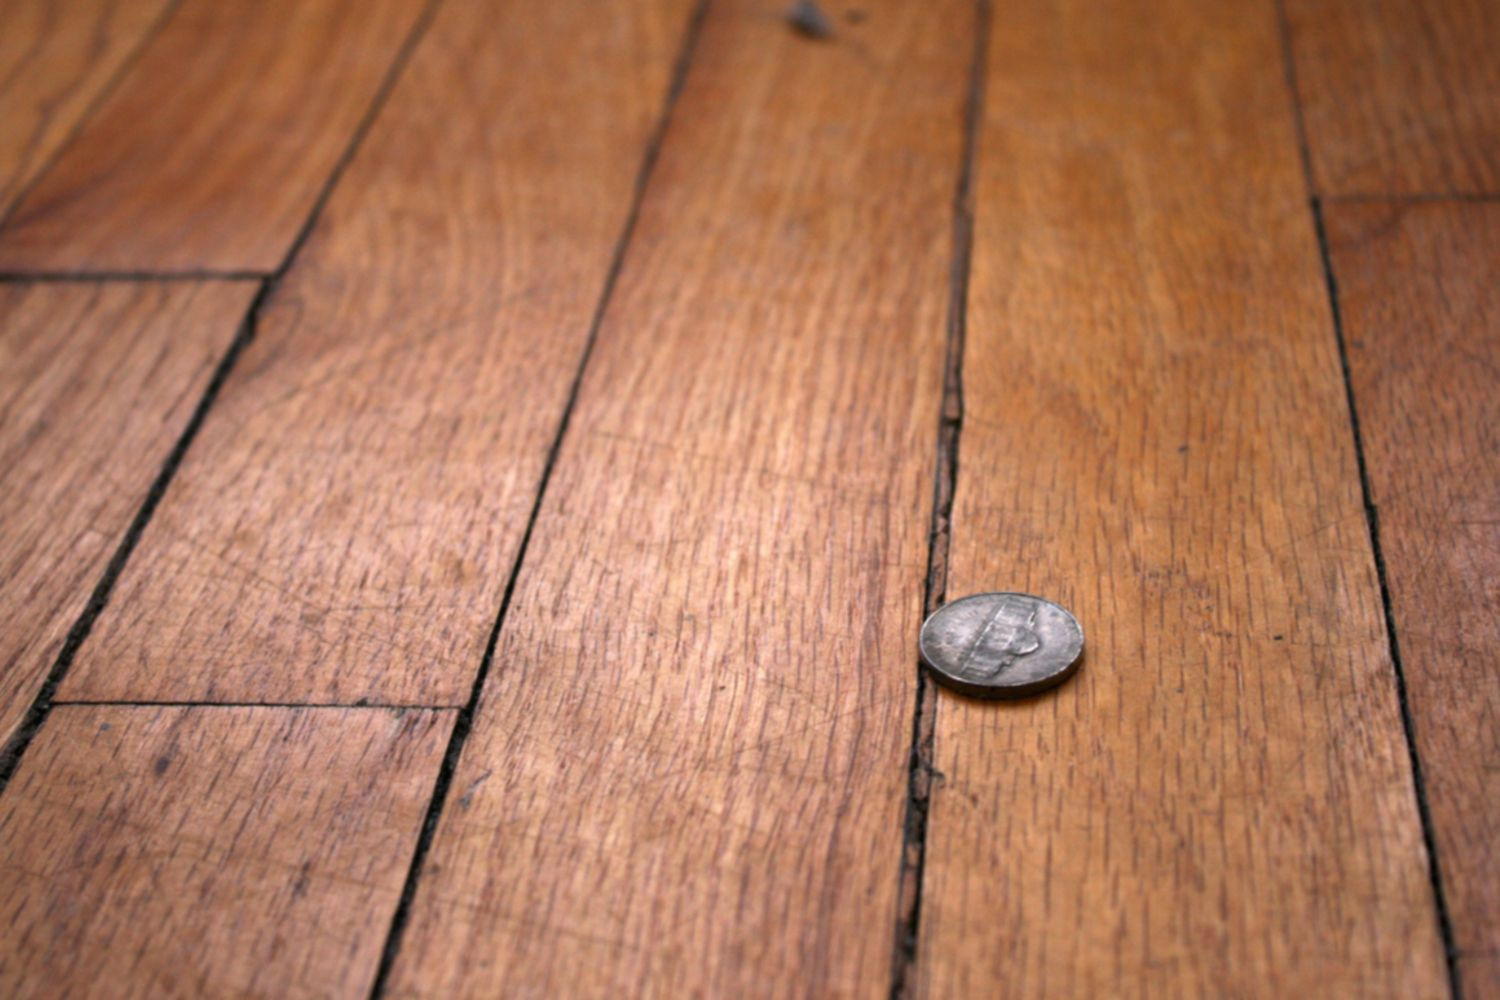 hardwood floor repair gaps in the planks of how to repair gaps between floorboards with regard to wood floor with gaps between boards 1500 x 1000 56a49eb25f9b58b7d0d7df8d